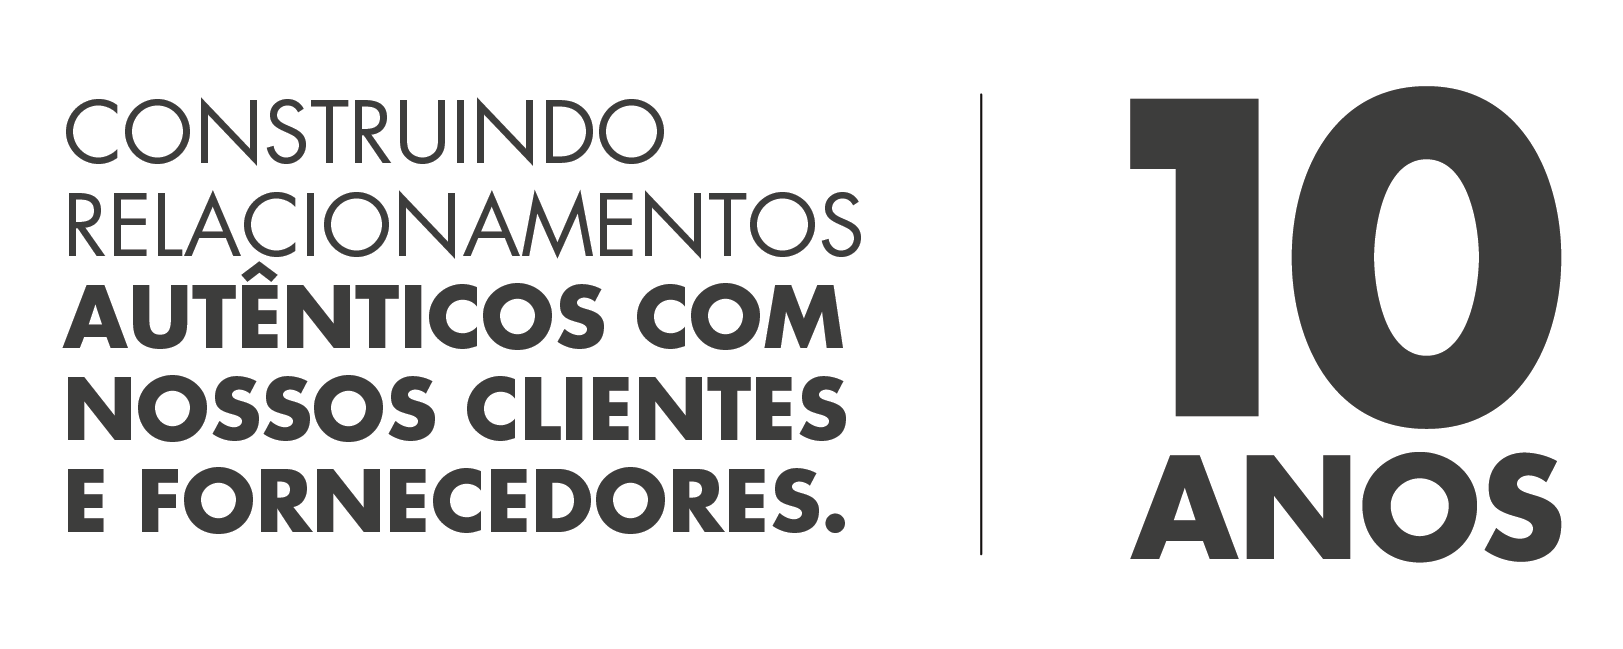 10anos-01-01-01.png